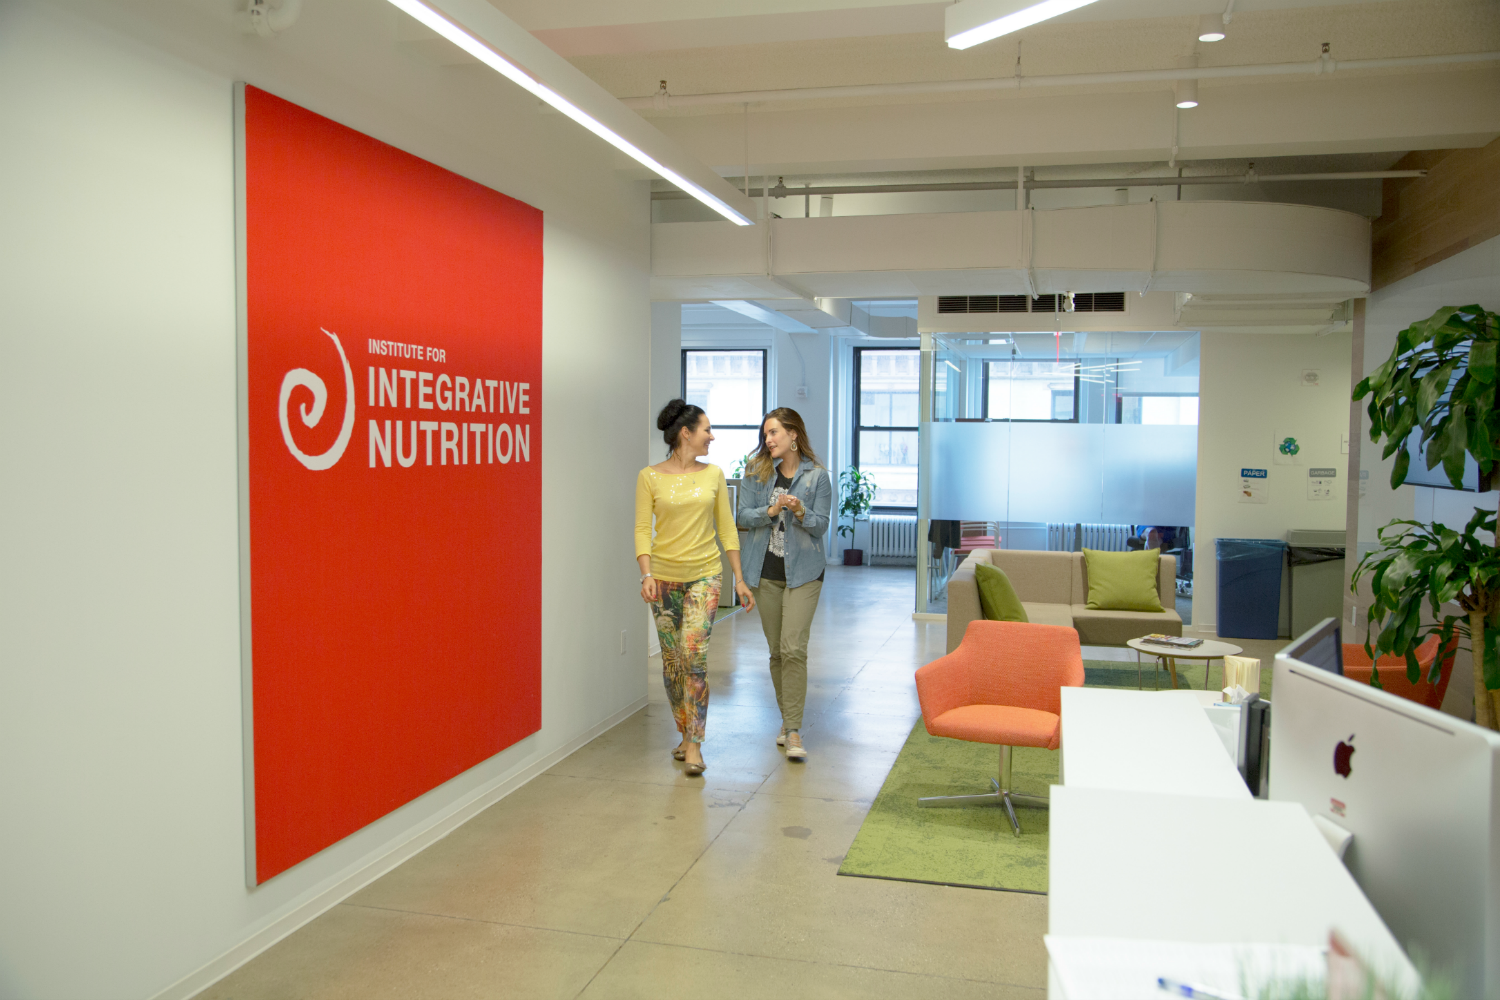 institute for integrative nutrition reviews